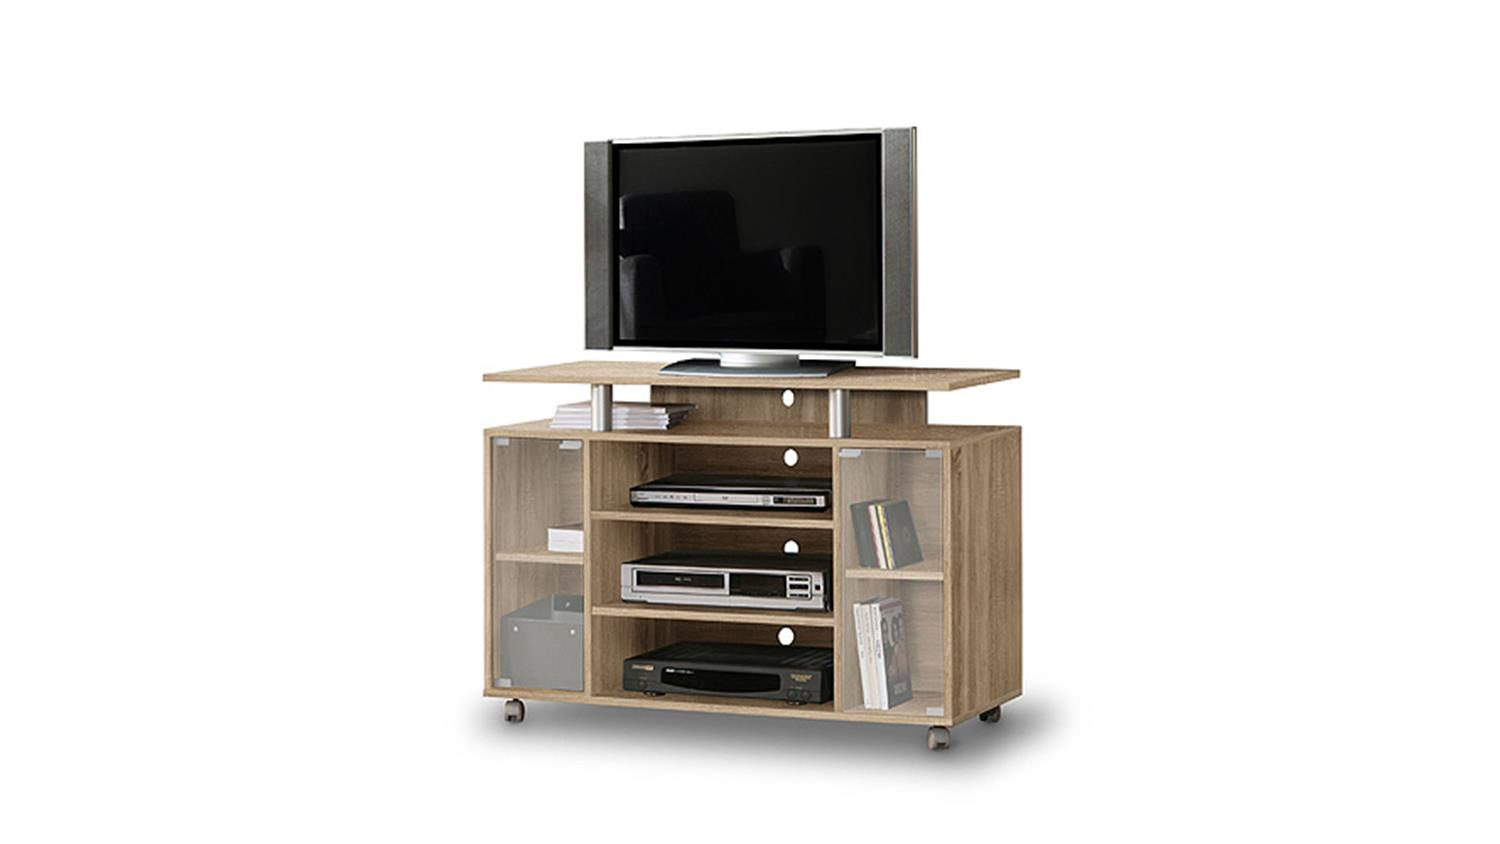 tv schrank auf rollen inspirierendes design f r wohnm bel. Black Bedroom Furniture Sets. Home Design Ideas